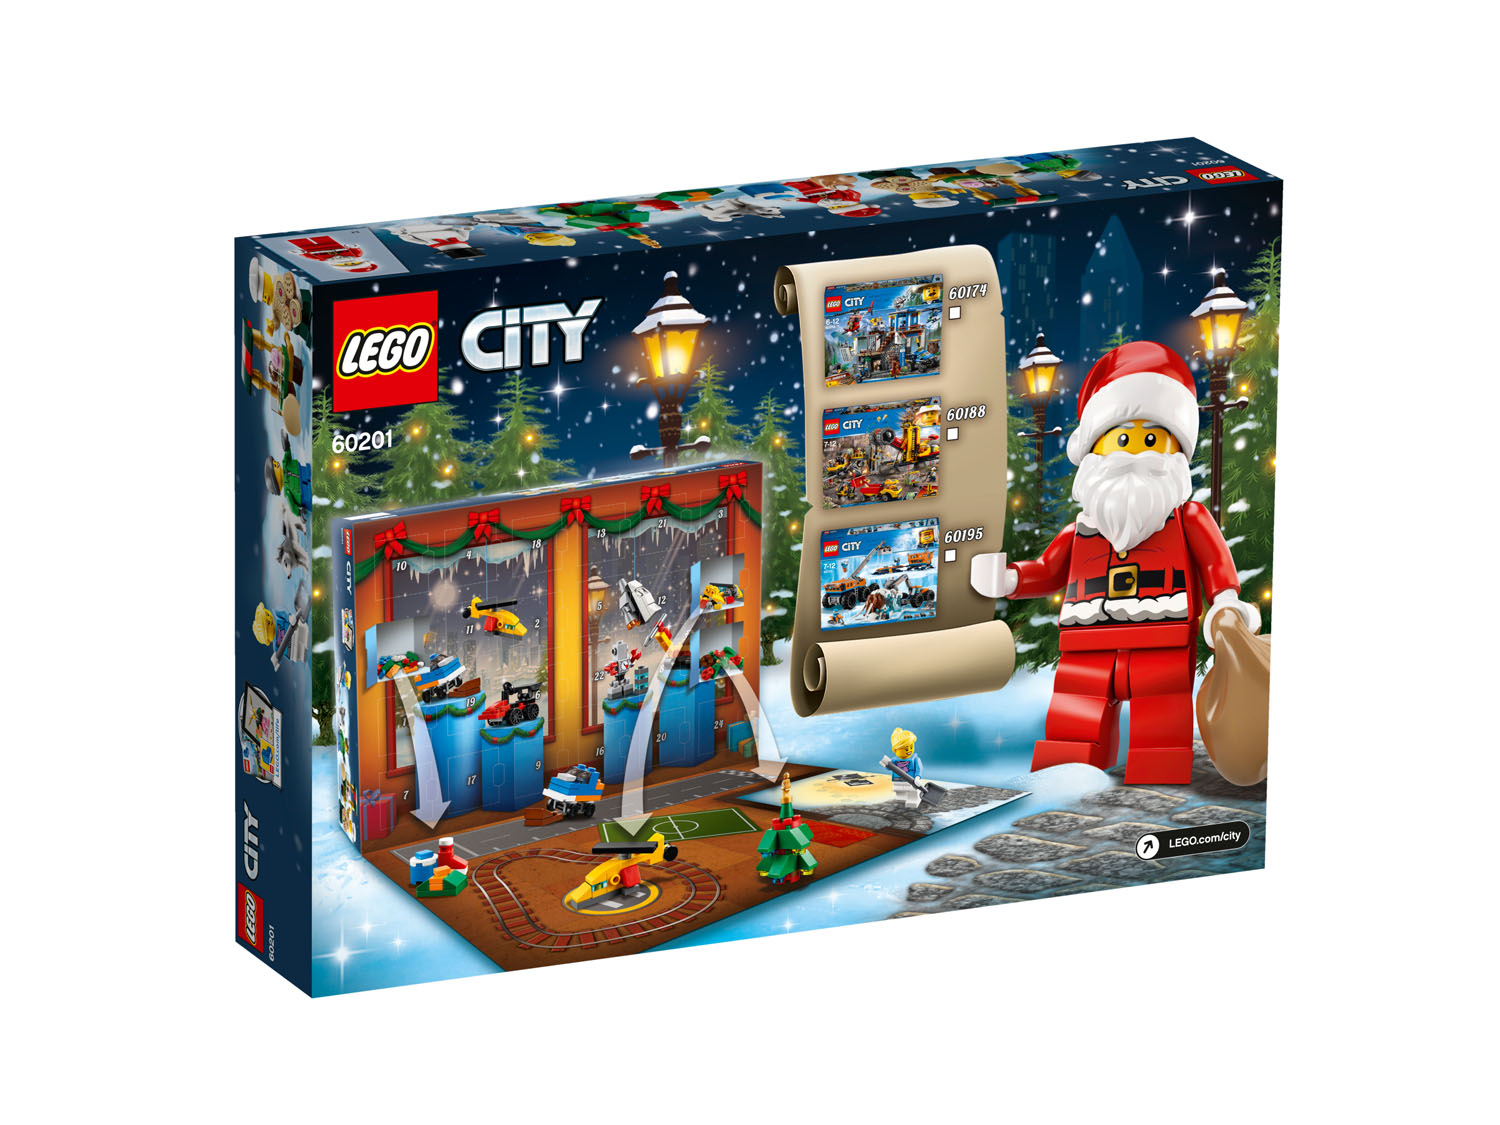 lego_city_town_60201_adventskalender_2018